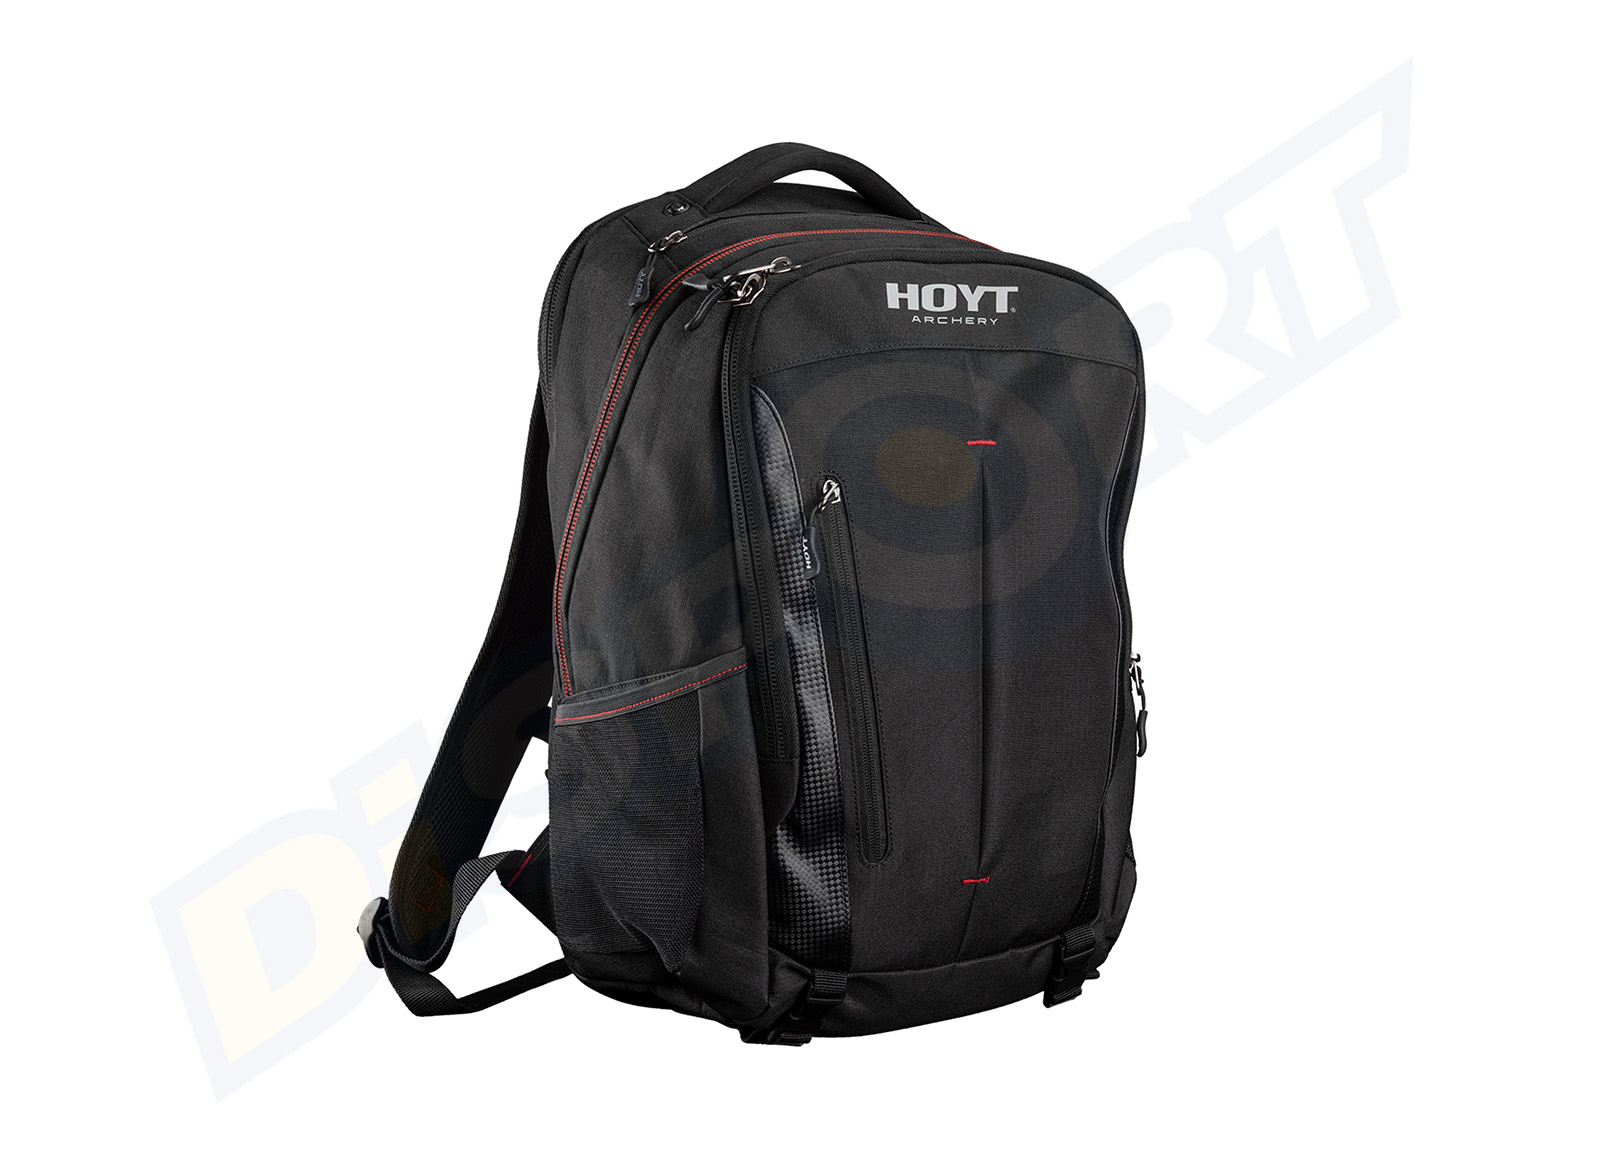 HOYT BACKPACK CONCOURSE 2020